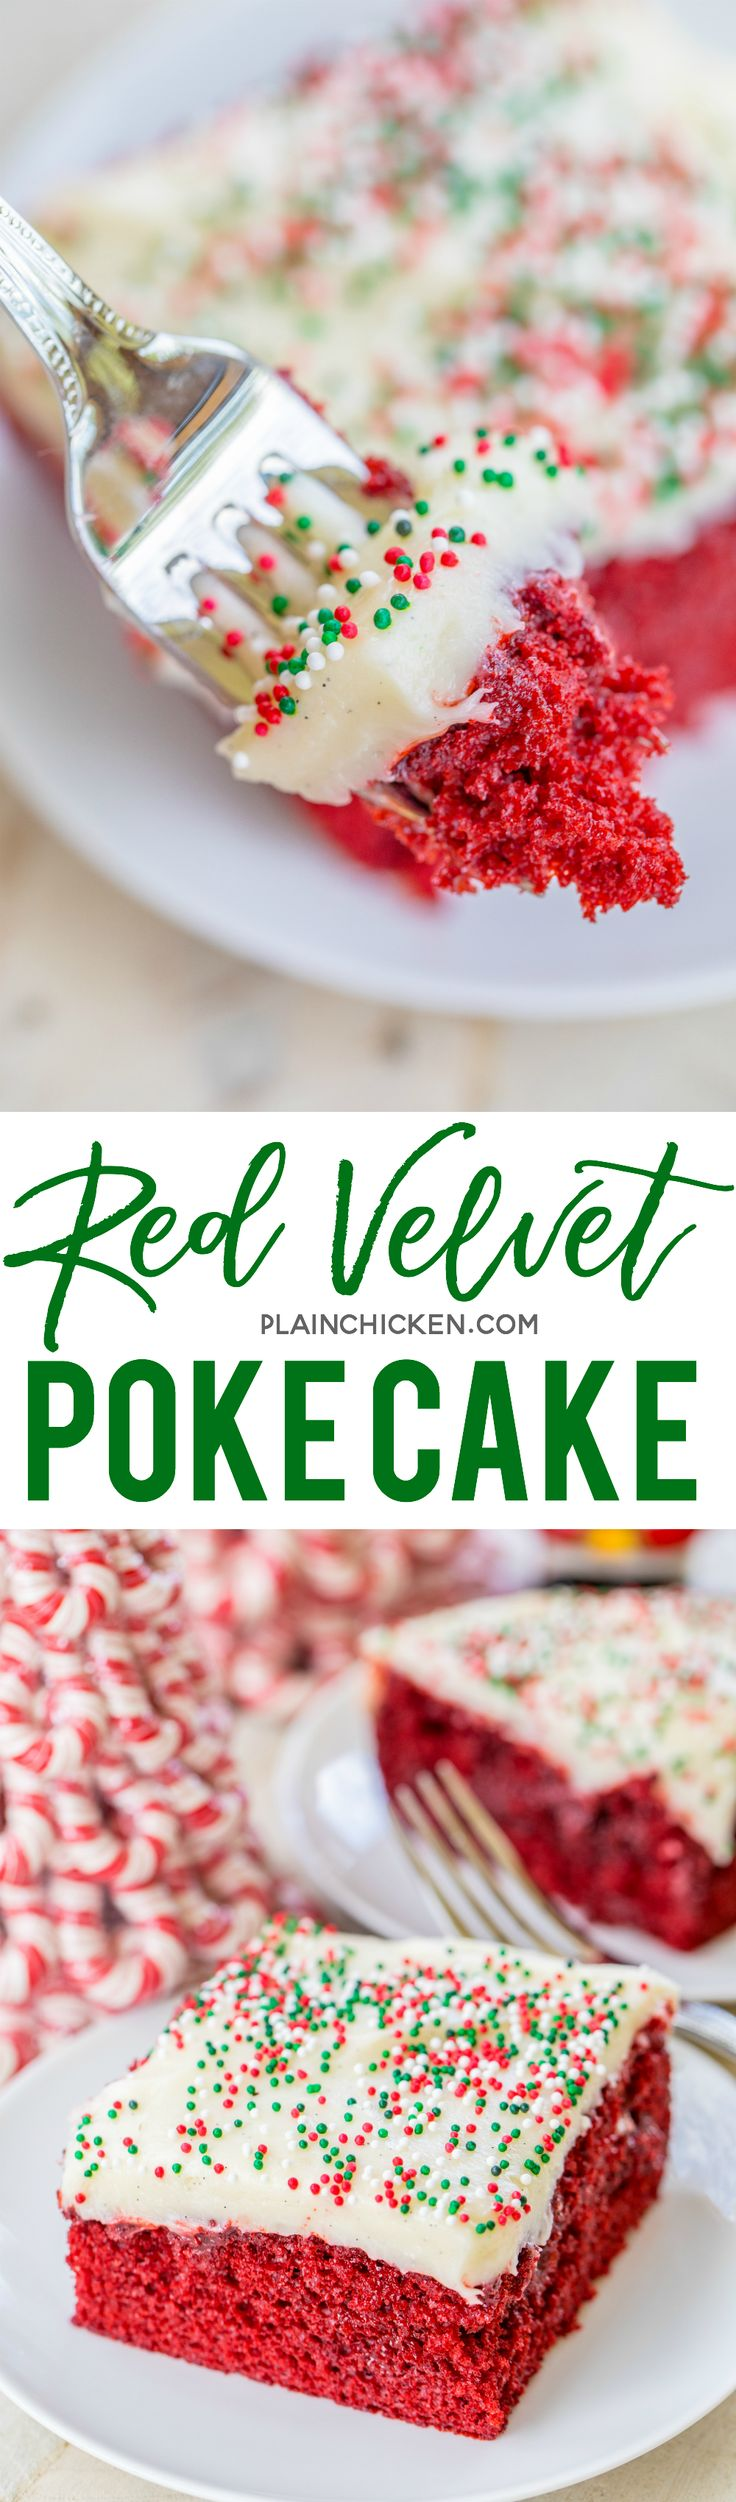 Red Velvet Poke Cake - red velvet cake soaked in sweetened condensed milk and chocolate and topped with a quick homemade cream cheese frosting. SO good! Great for potlucks and the holidays.  | Posted By: DebbieNet.com